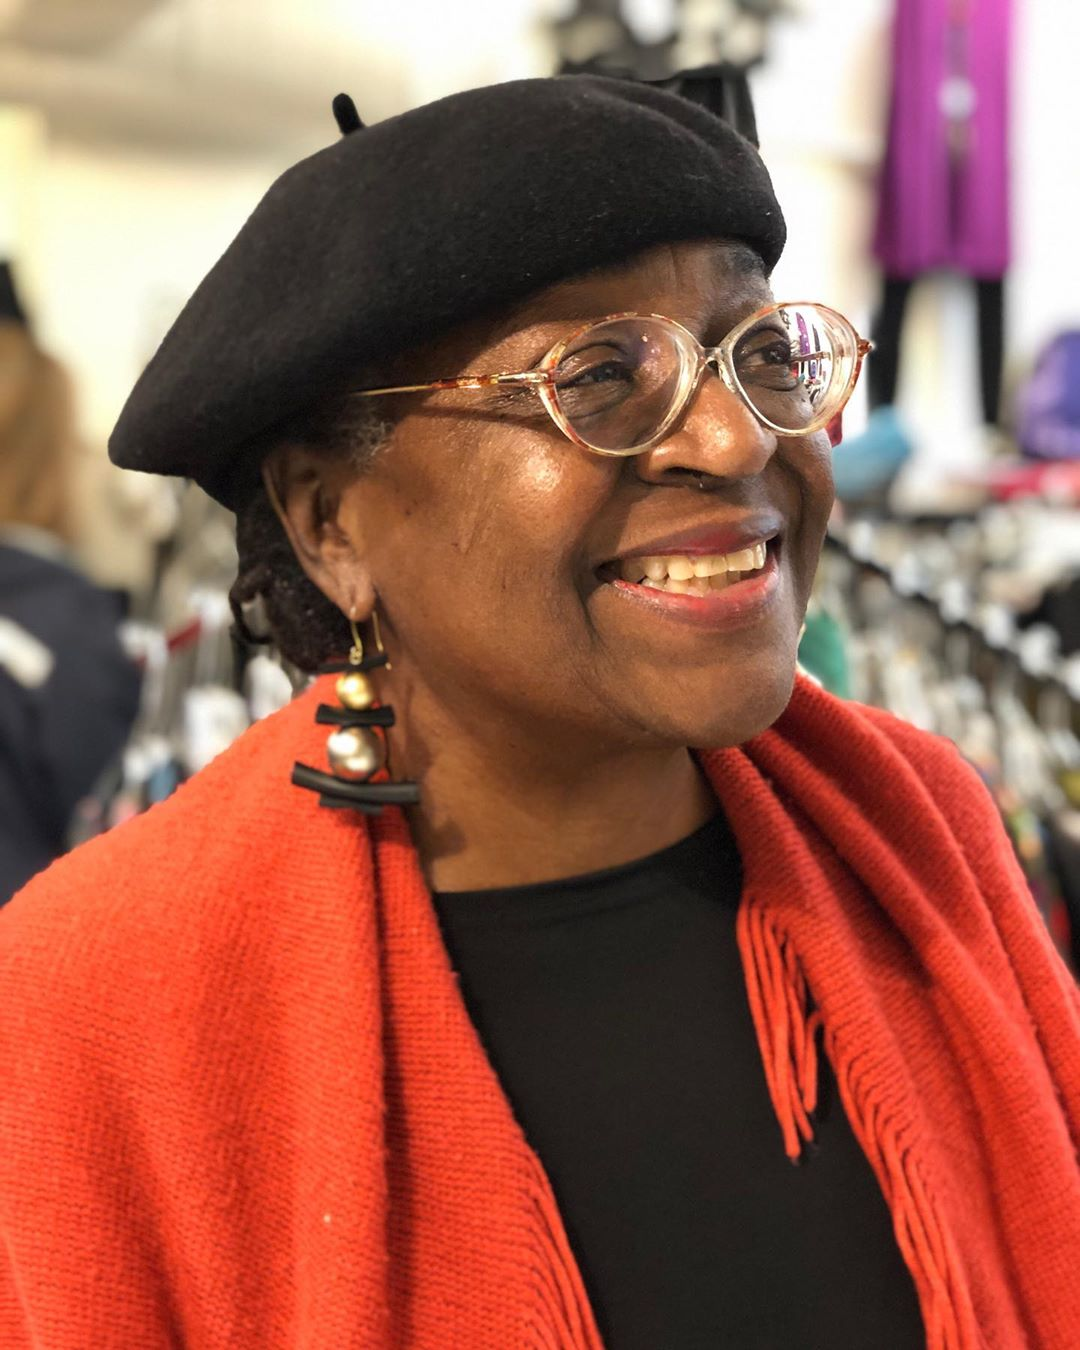 Joan is shining in her new @zzanjewelry earring! That smile made our day shine @grovearcade @caravans_asheville